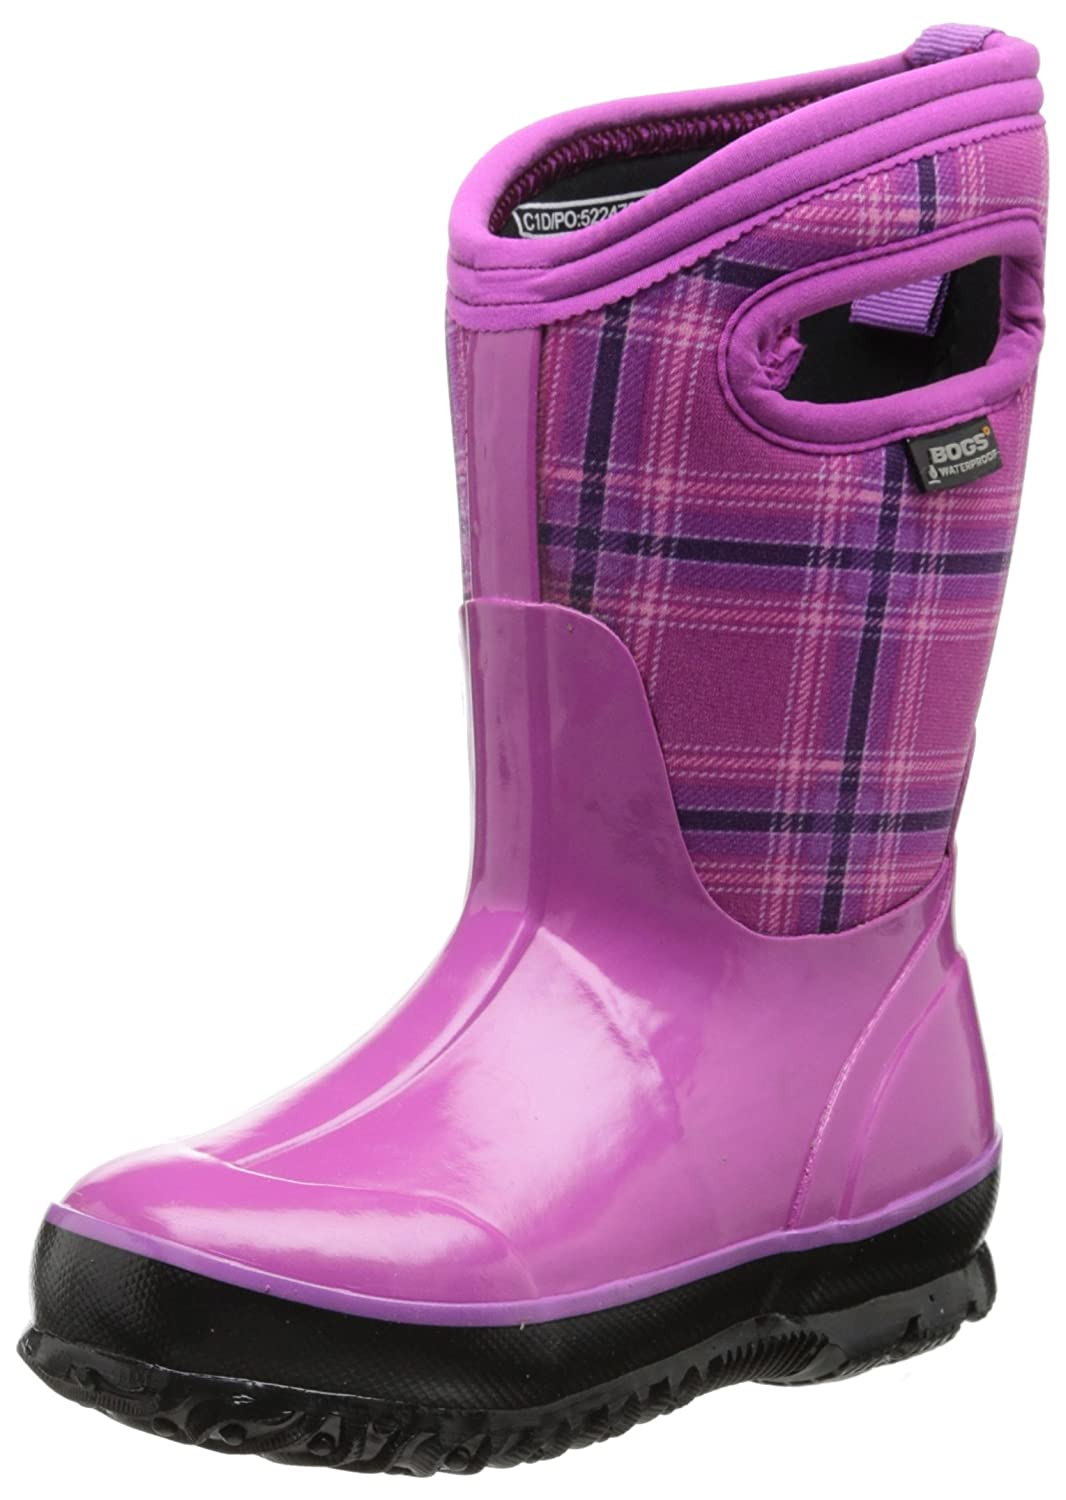 a5b85a8ac Bogs Kids' Classic High Waterproof Insulated Rubber Neoprene Rain Boot,  Multiple Color Options